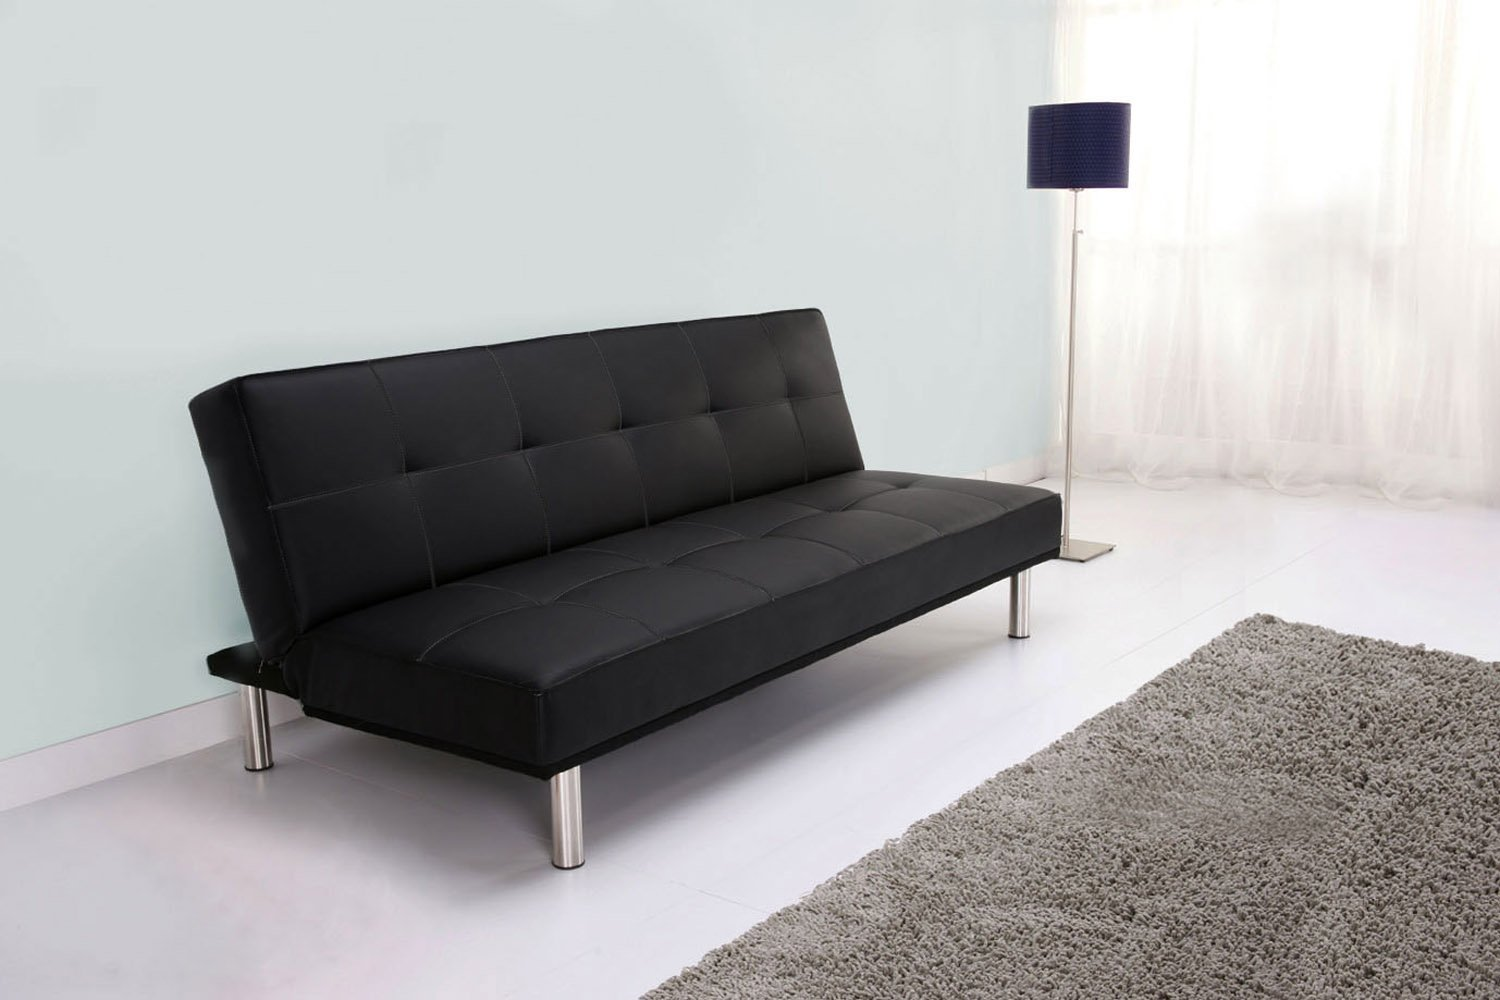 Leader Lifestyle Zenko Faux Leather Futon Sofa Bed, Black: Amazon.co.uk:  Kitchen & Home